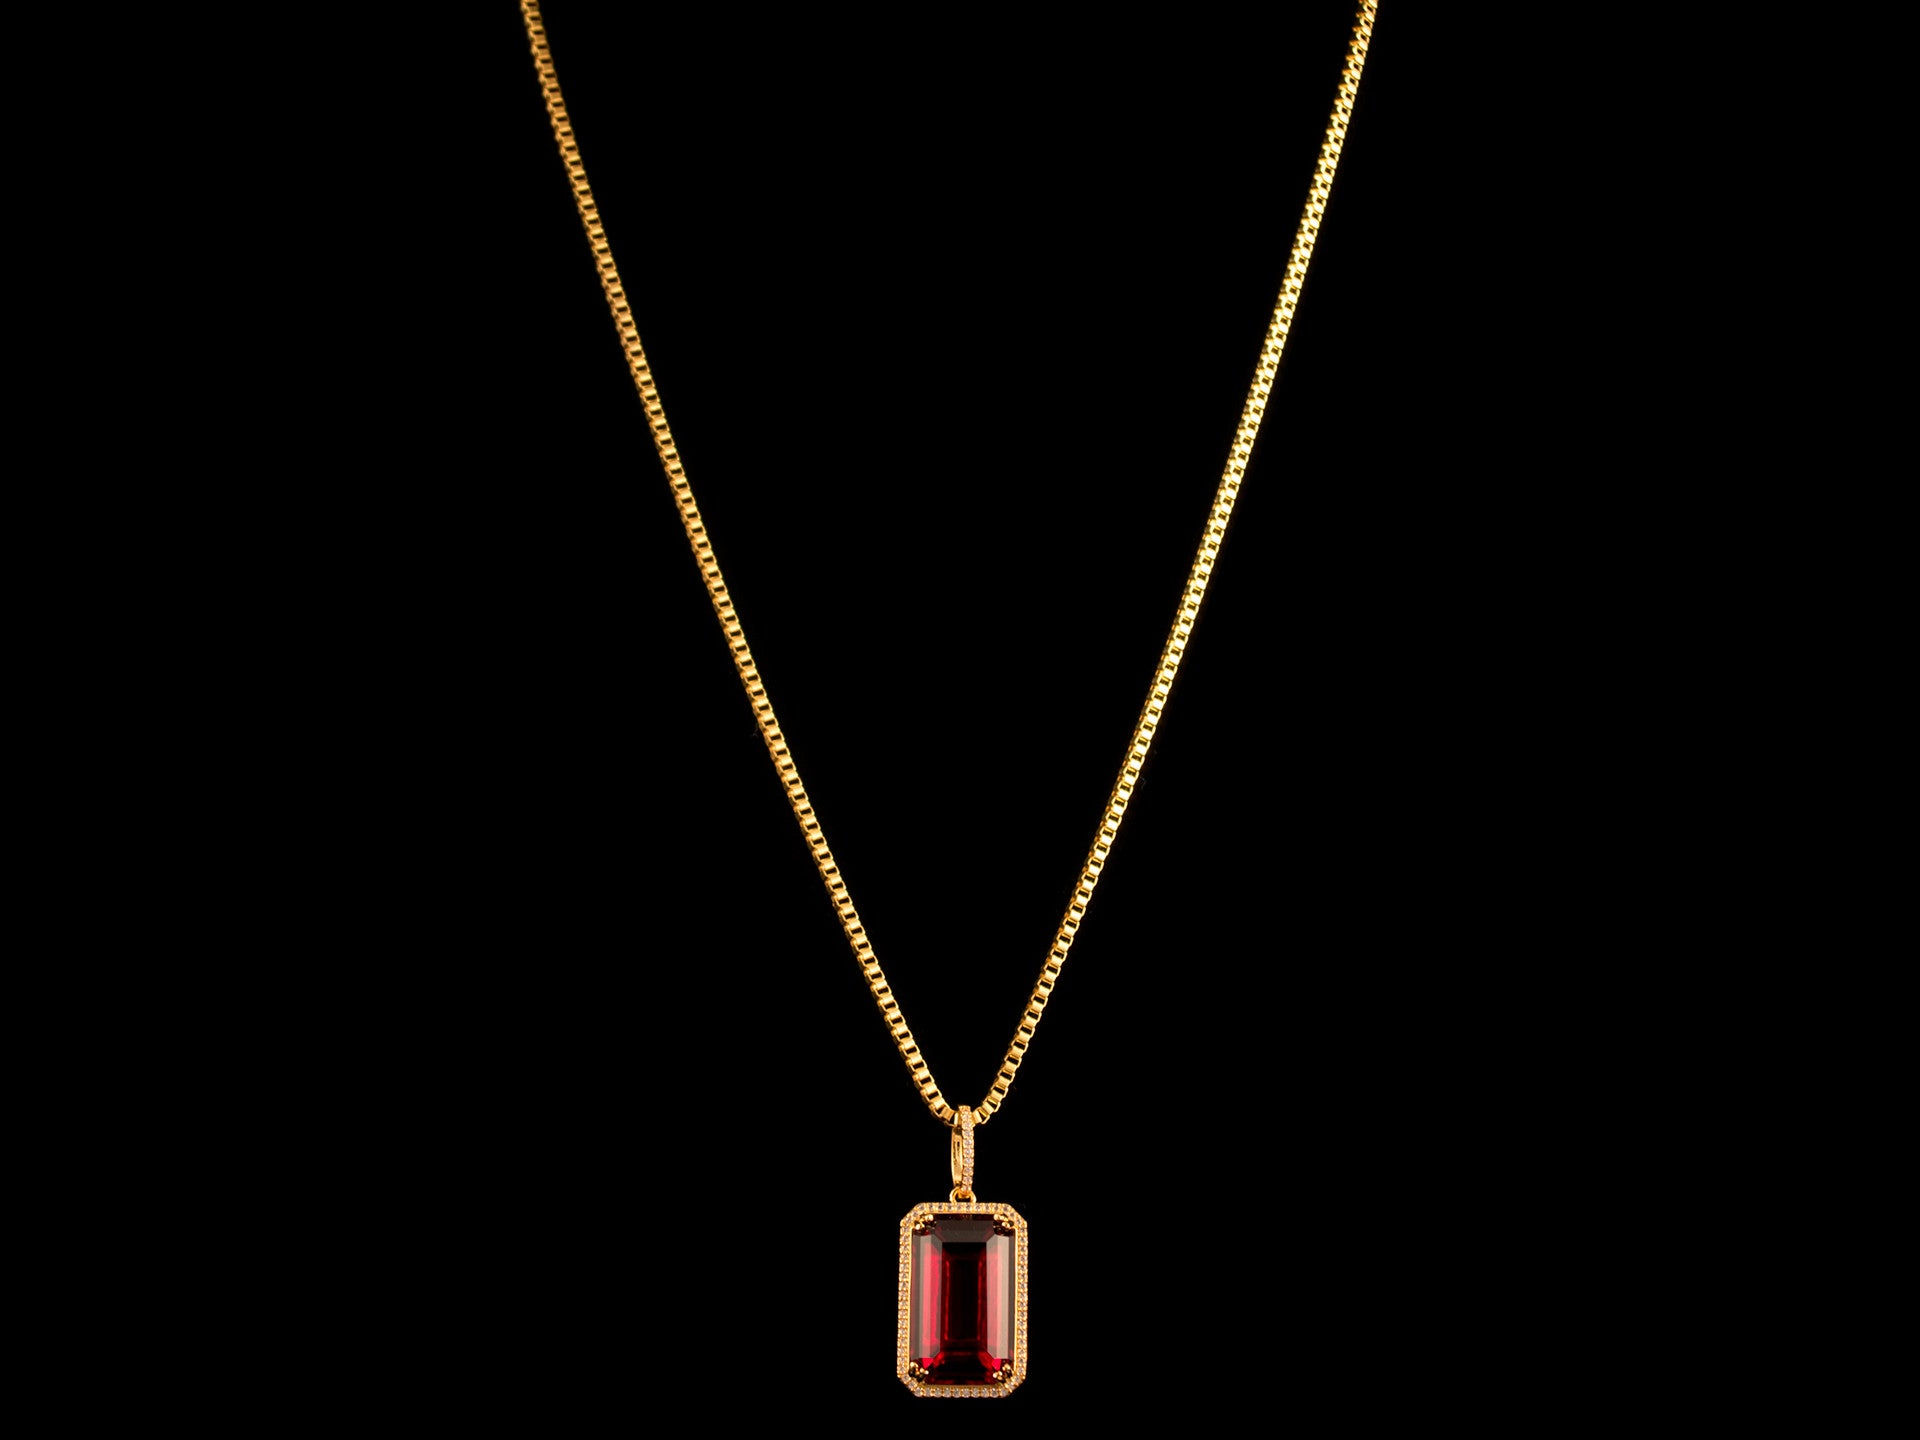 Paved Red Crystal Charm & Necklace